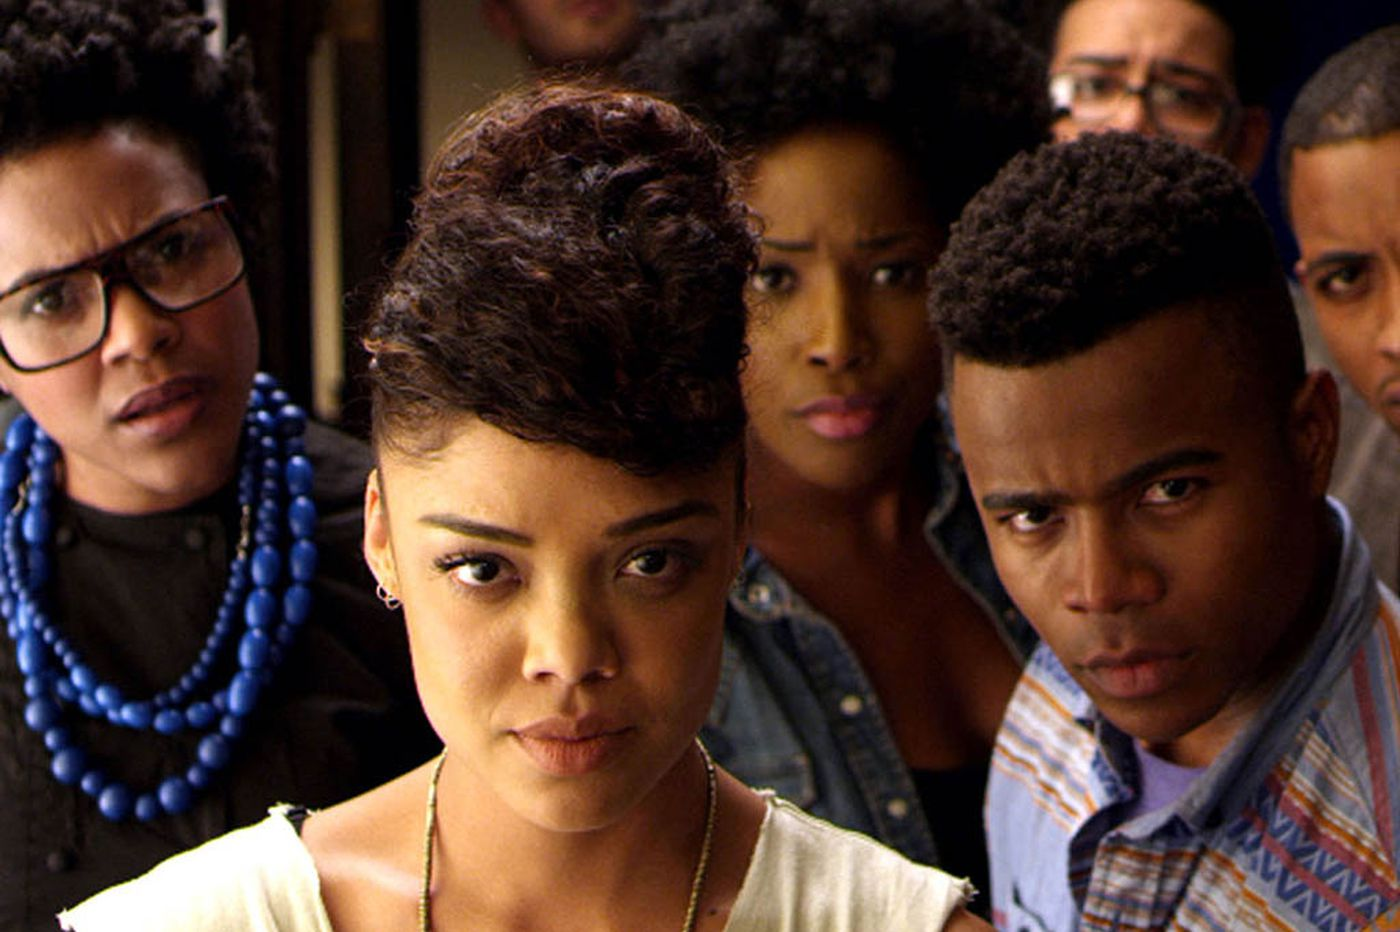 'Dear White People' is a funny campus comedy